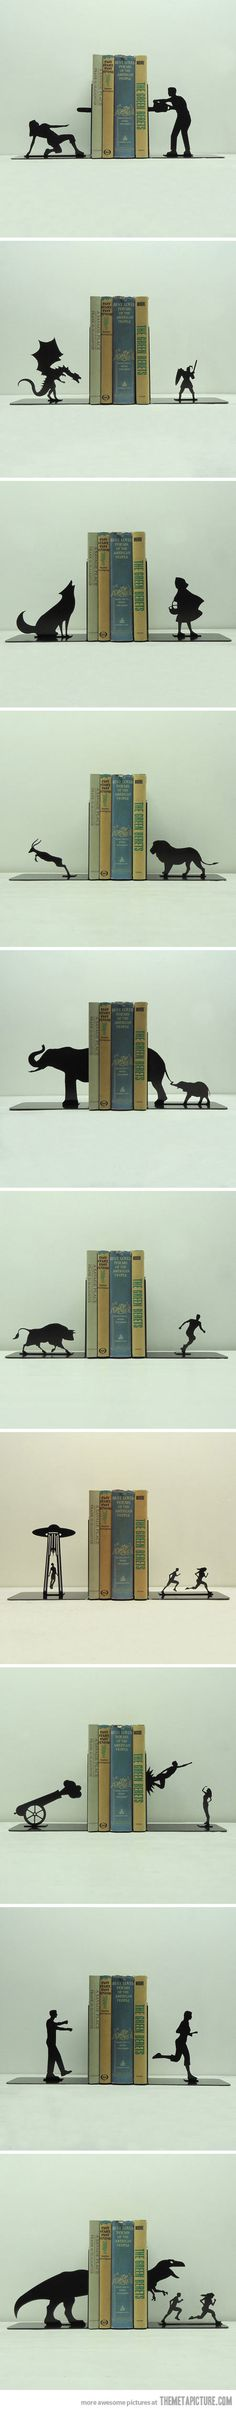 Book ends!